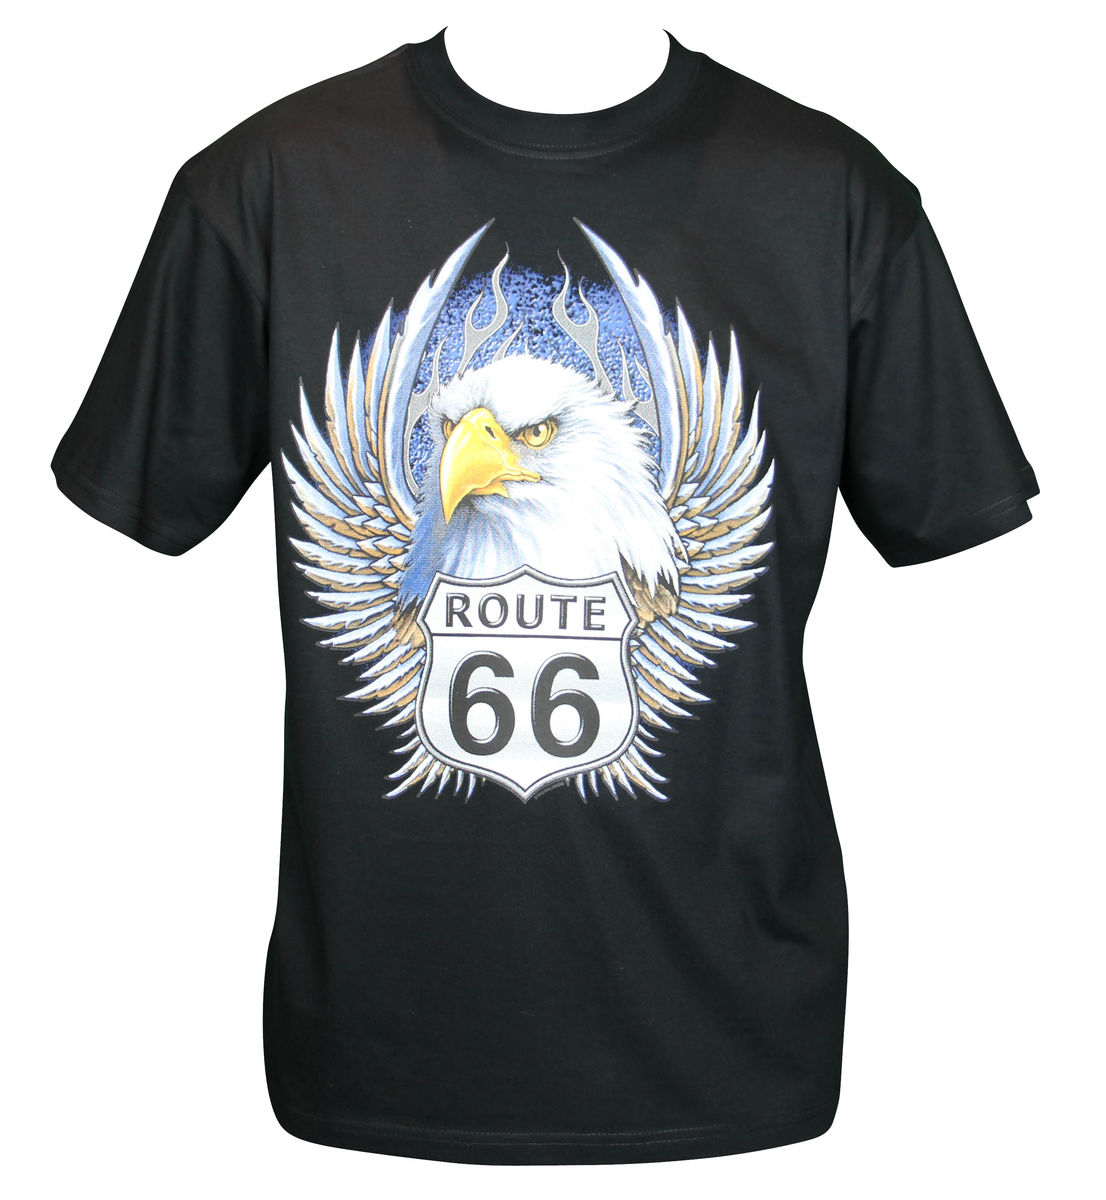 t shirt homme manches courtes aigle route 66 usa biker 13034. Black Bedroom Furniture Sets. Home Design Ideas